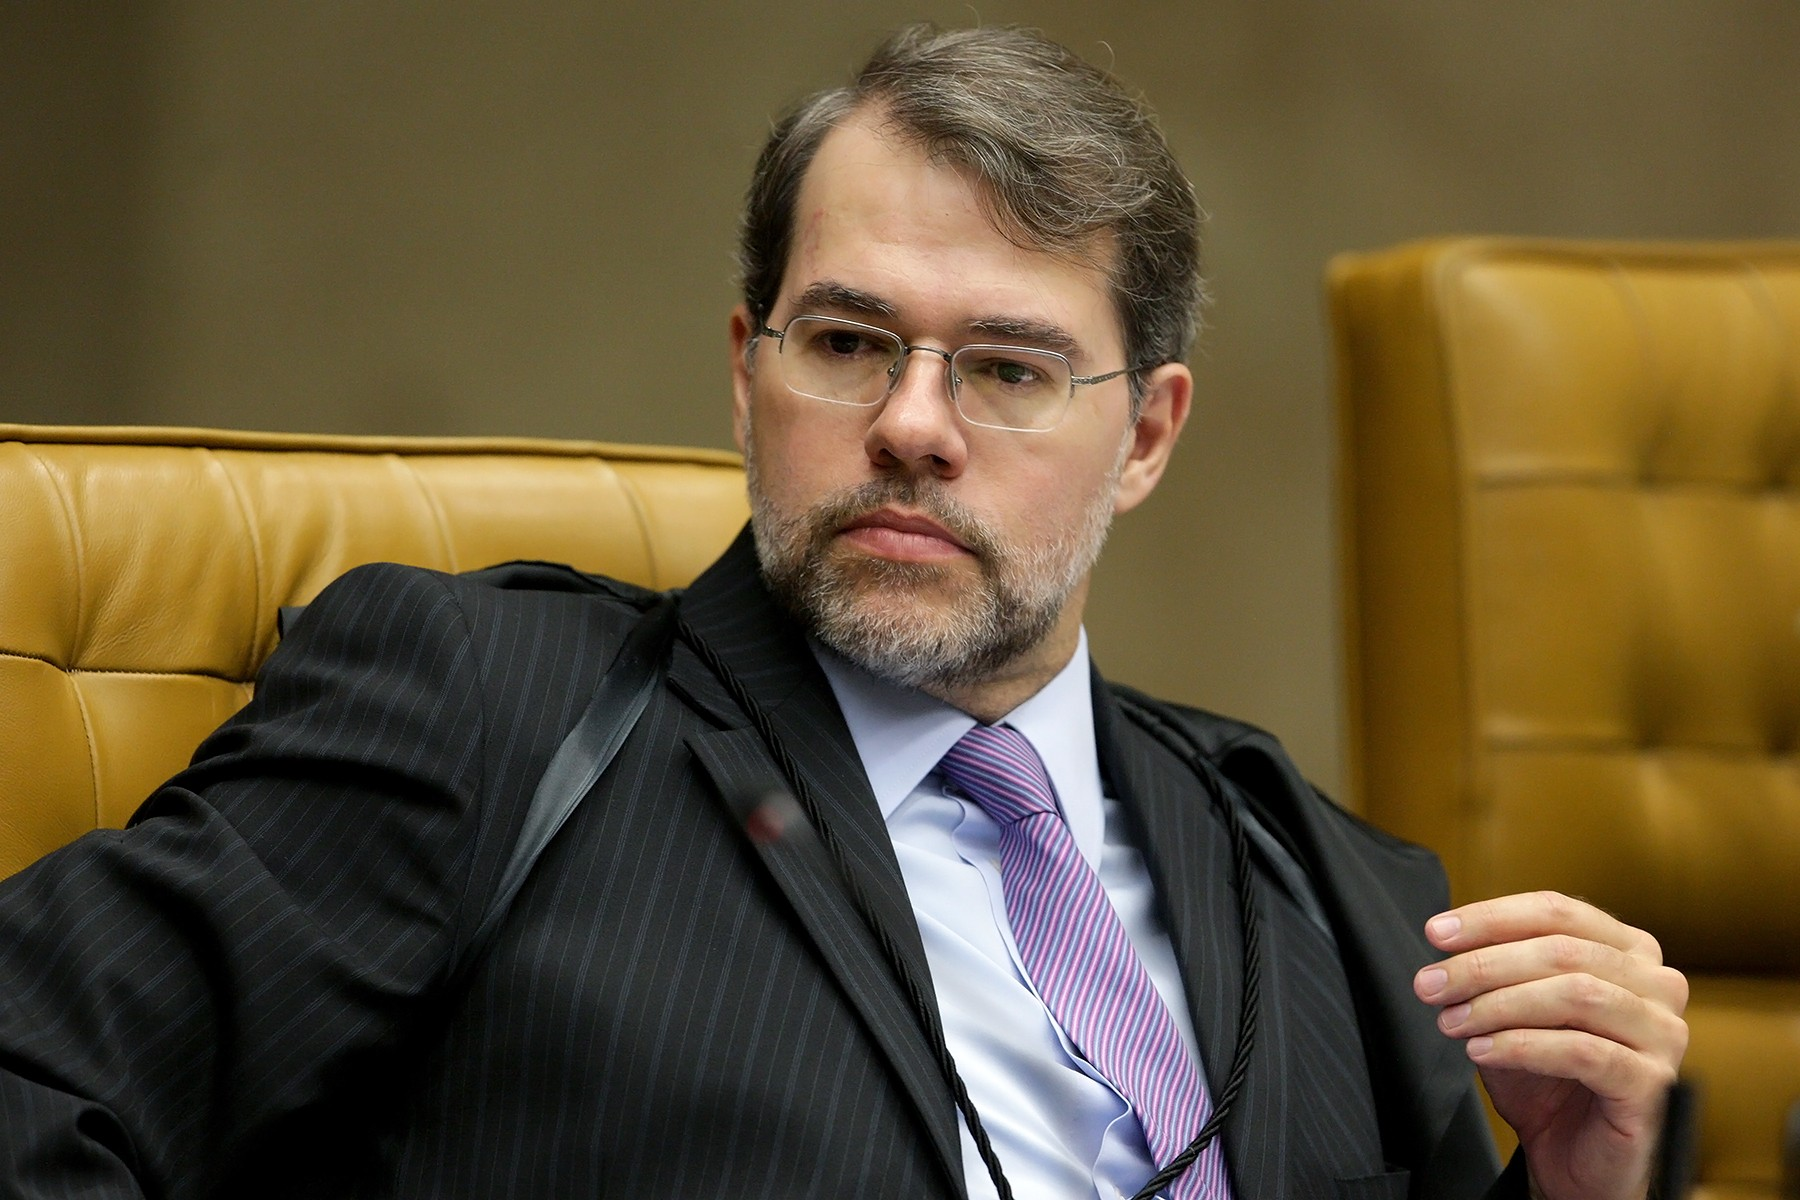 O ministro do STF Dias Toffoli (Foto: Fellipe Sampaio/SCO/STF)